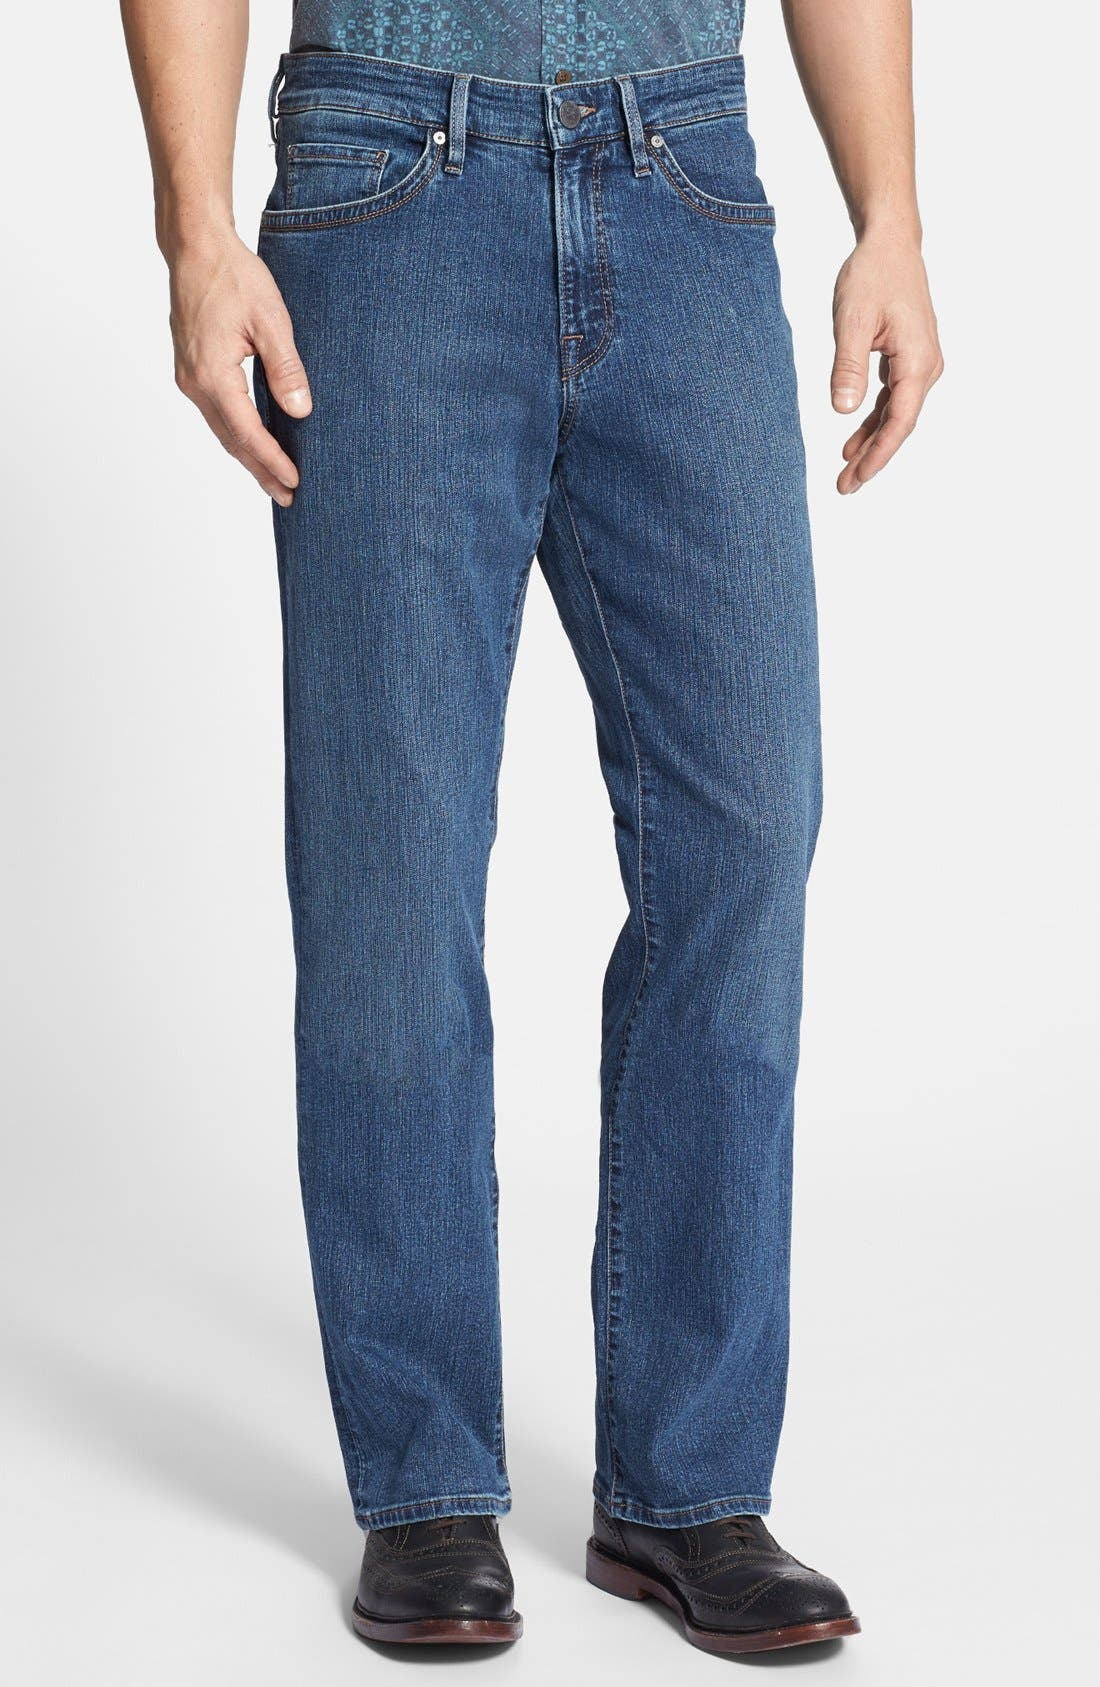 Charisma Classic Relaxed Fit Jeans,                             Main thumbnail 1, color,                             Mid Comfort